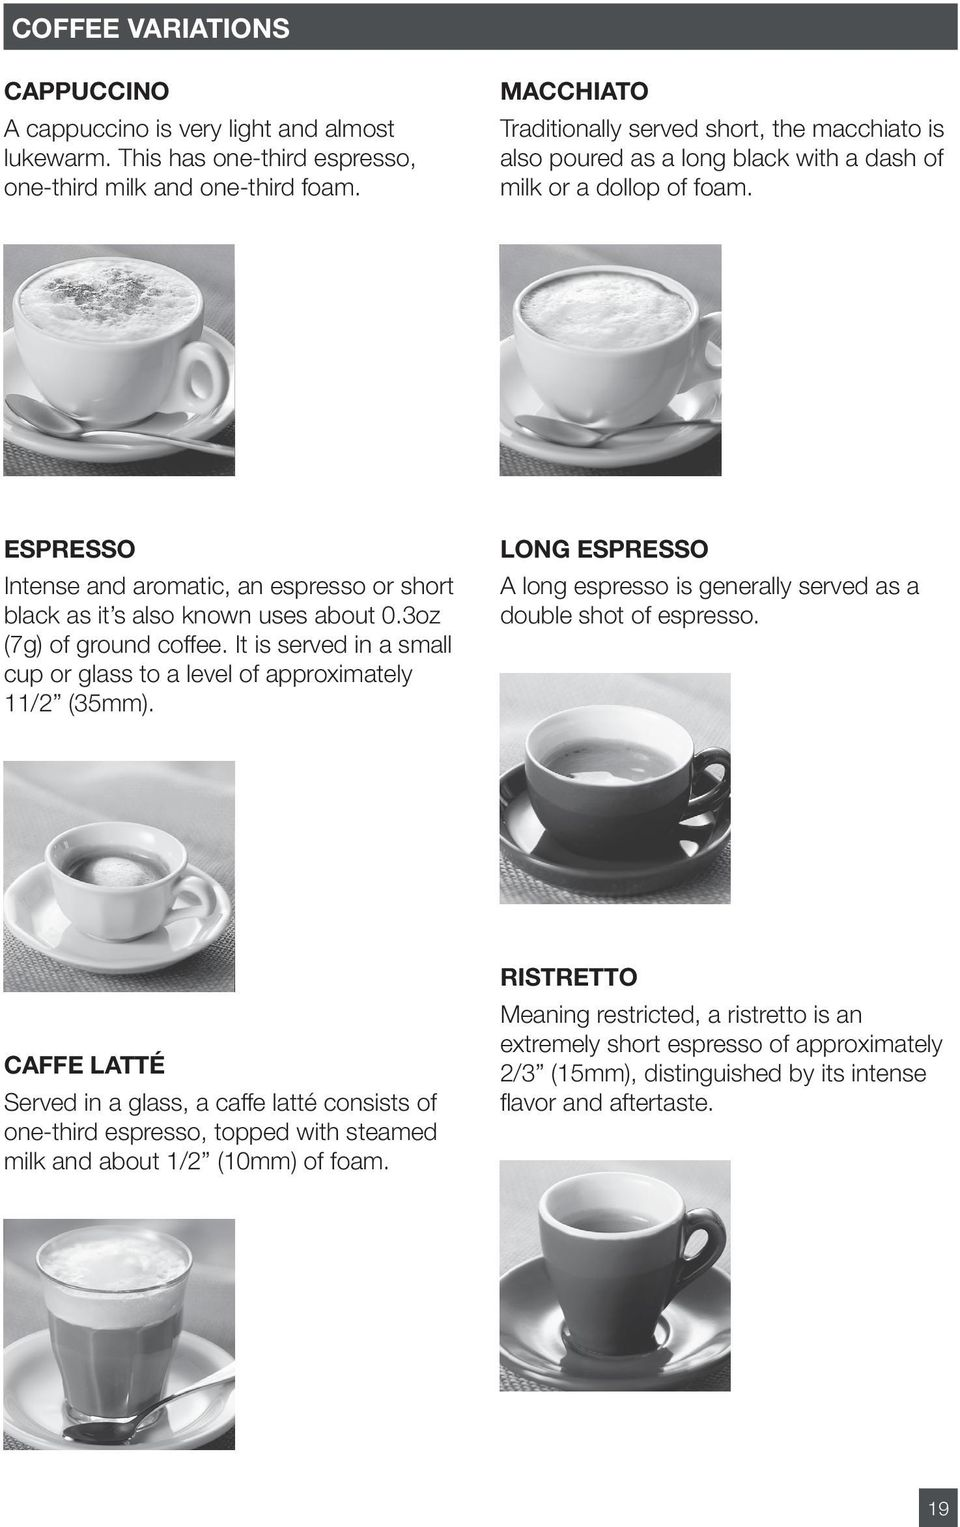 ESPRESSO Intense and aromatic, an espresso or short black as it s also known uses about 0.3oz (7g) of ground coffee. It is served in a small cup or glass to a level of approximately 11/2 (35mm).